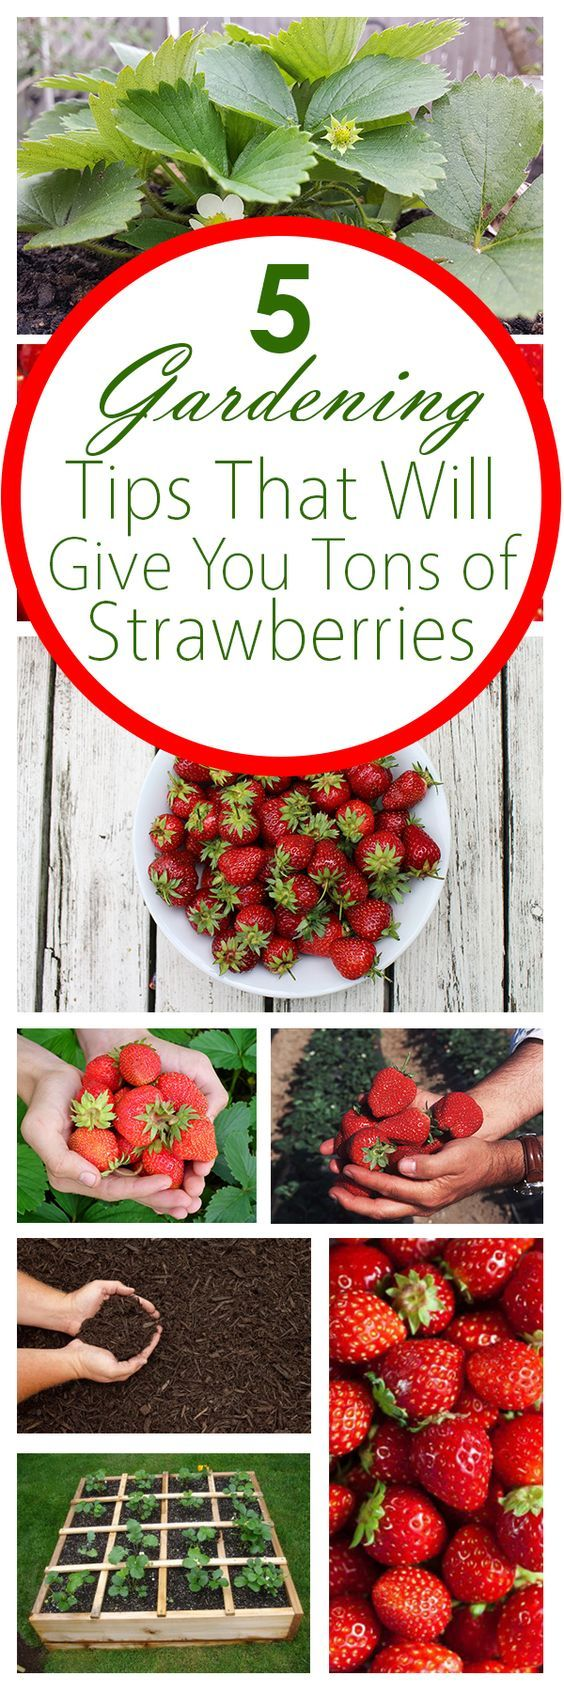 5 Gardening Tips That Will Give You Tons of Strawberries: …